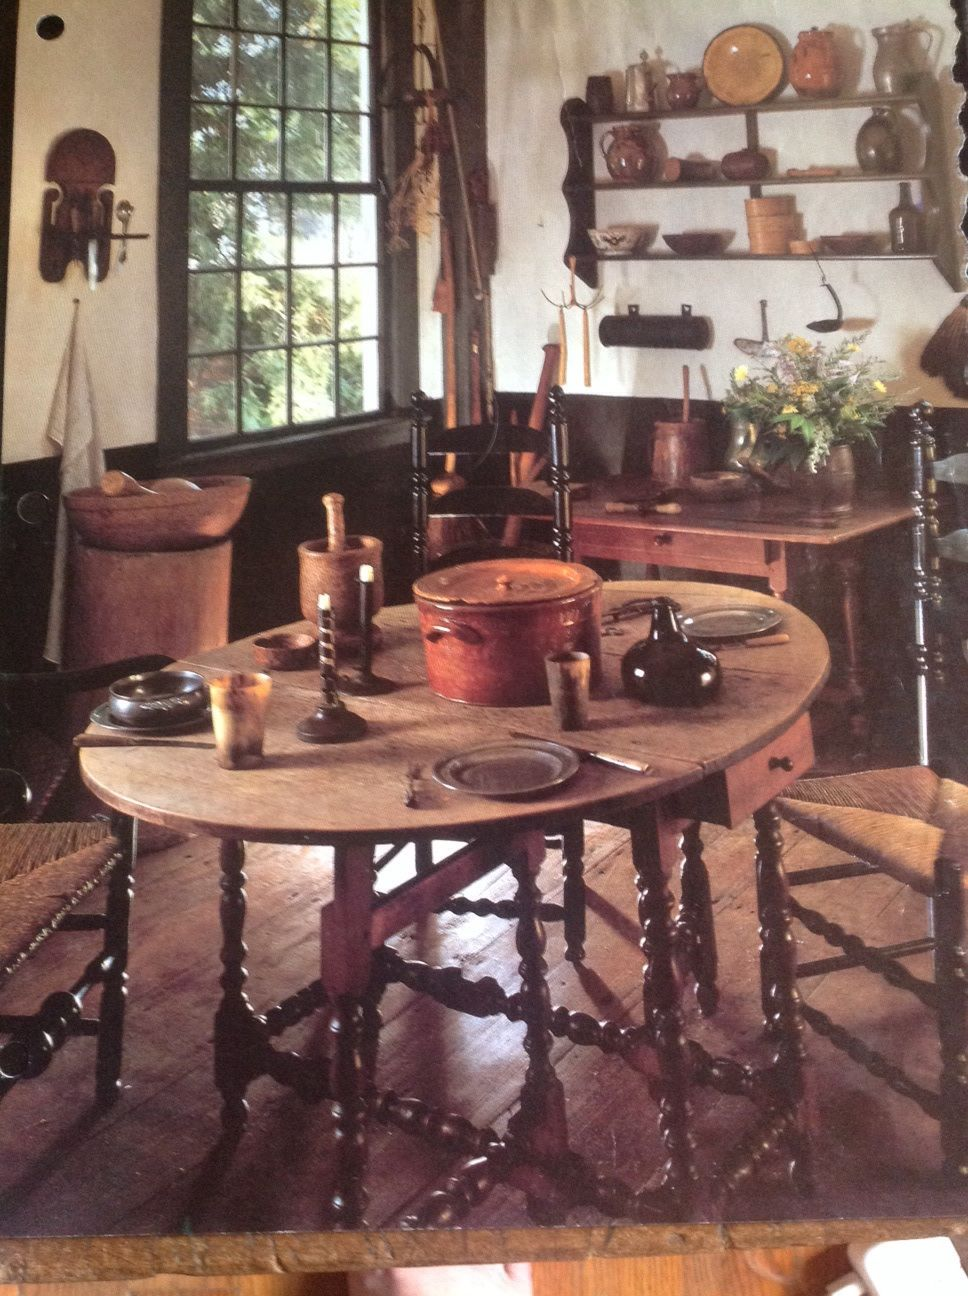 Kitchen from old Colonial Homes. Primitive decorating